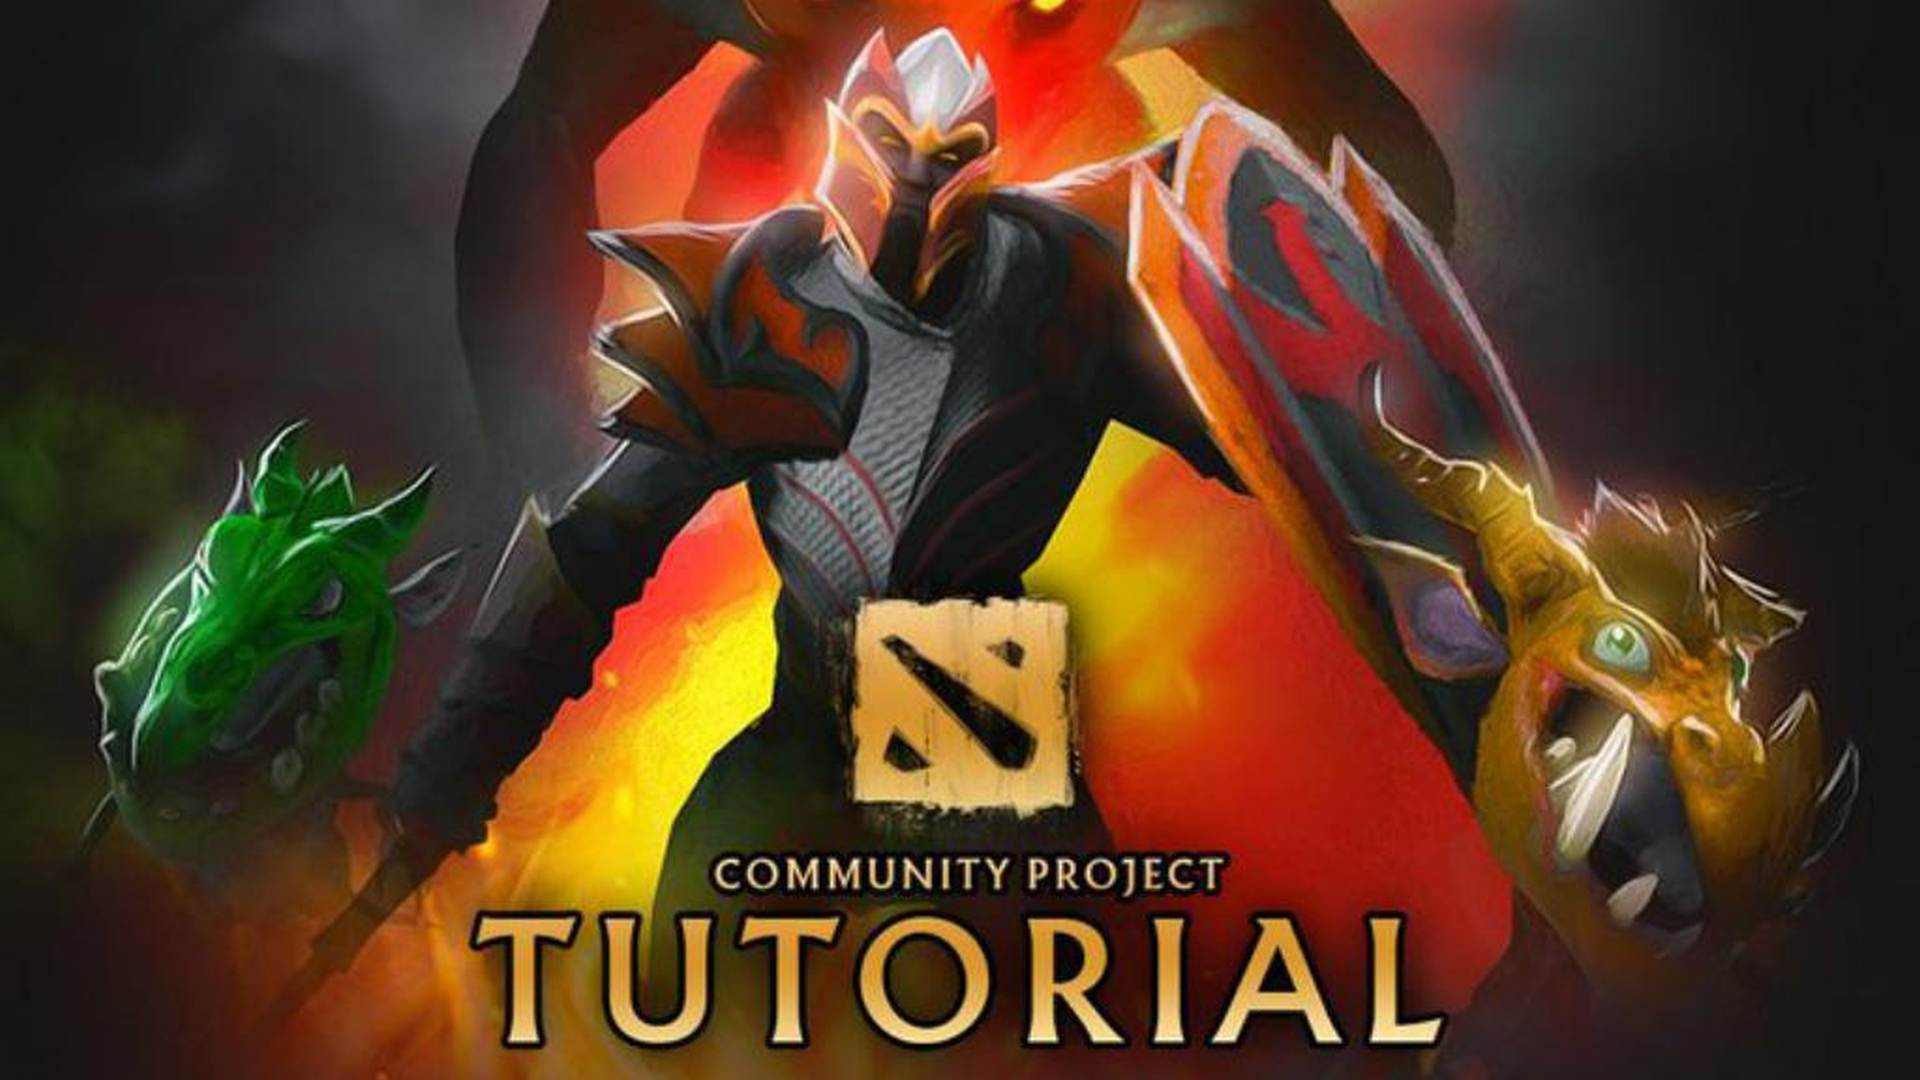 Dota 2 community makes its own tutorial ahead of anime premiere screenshot